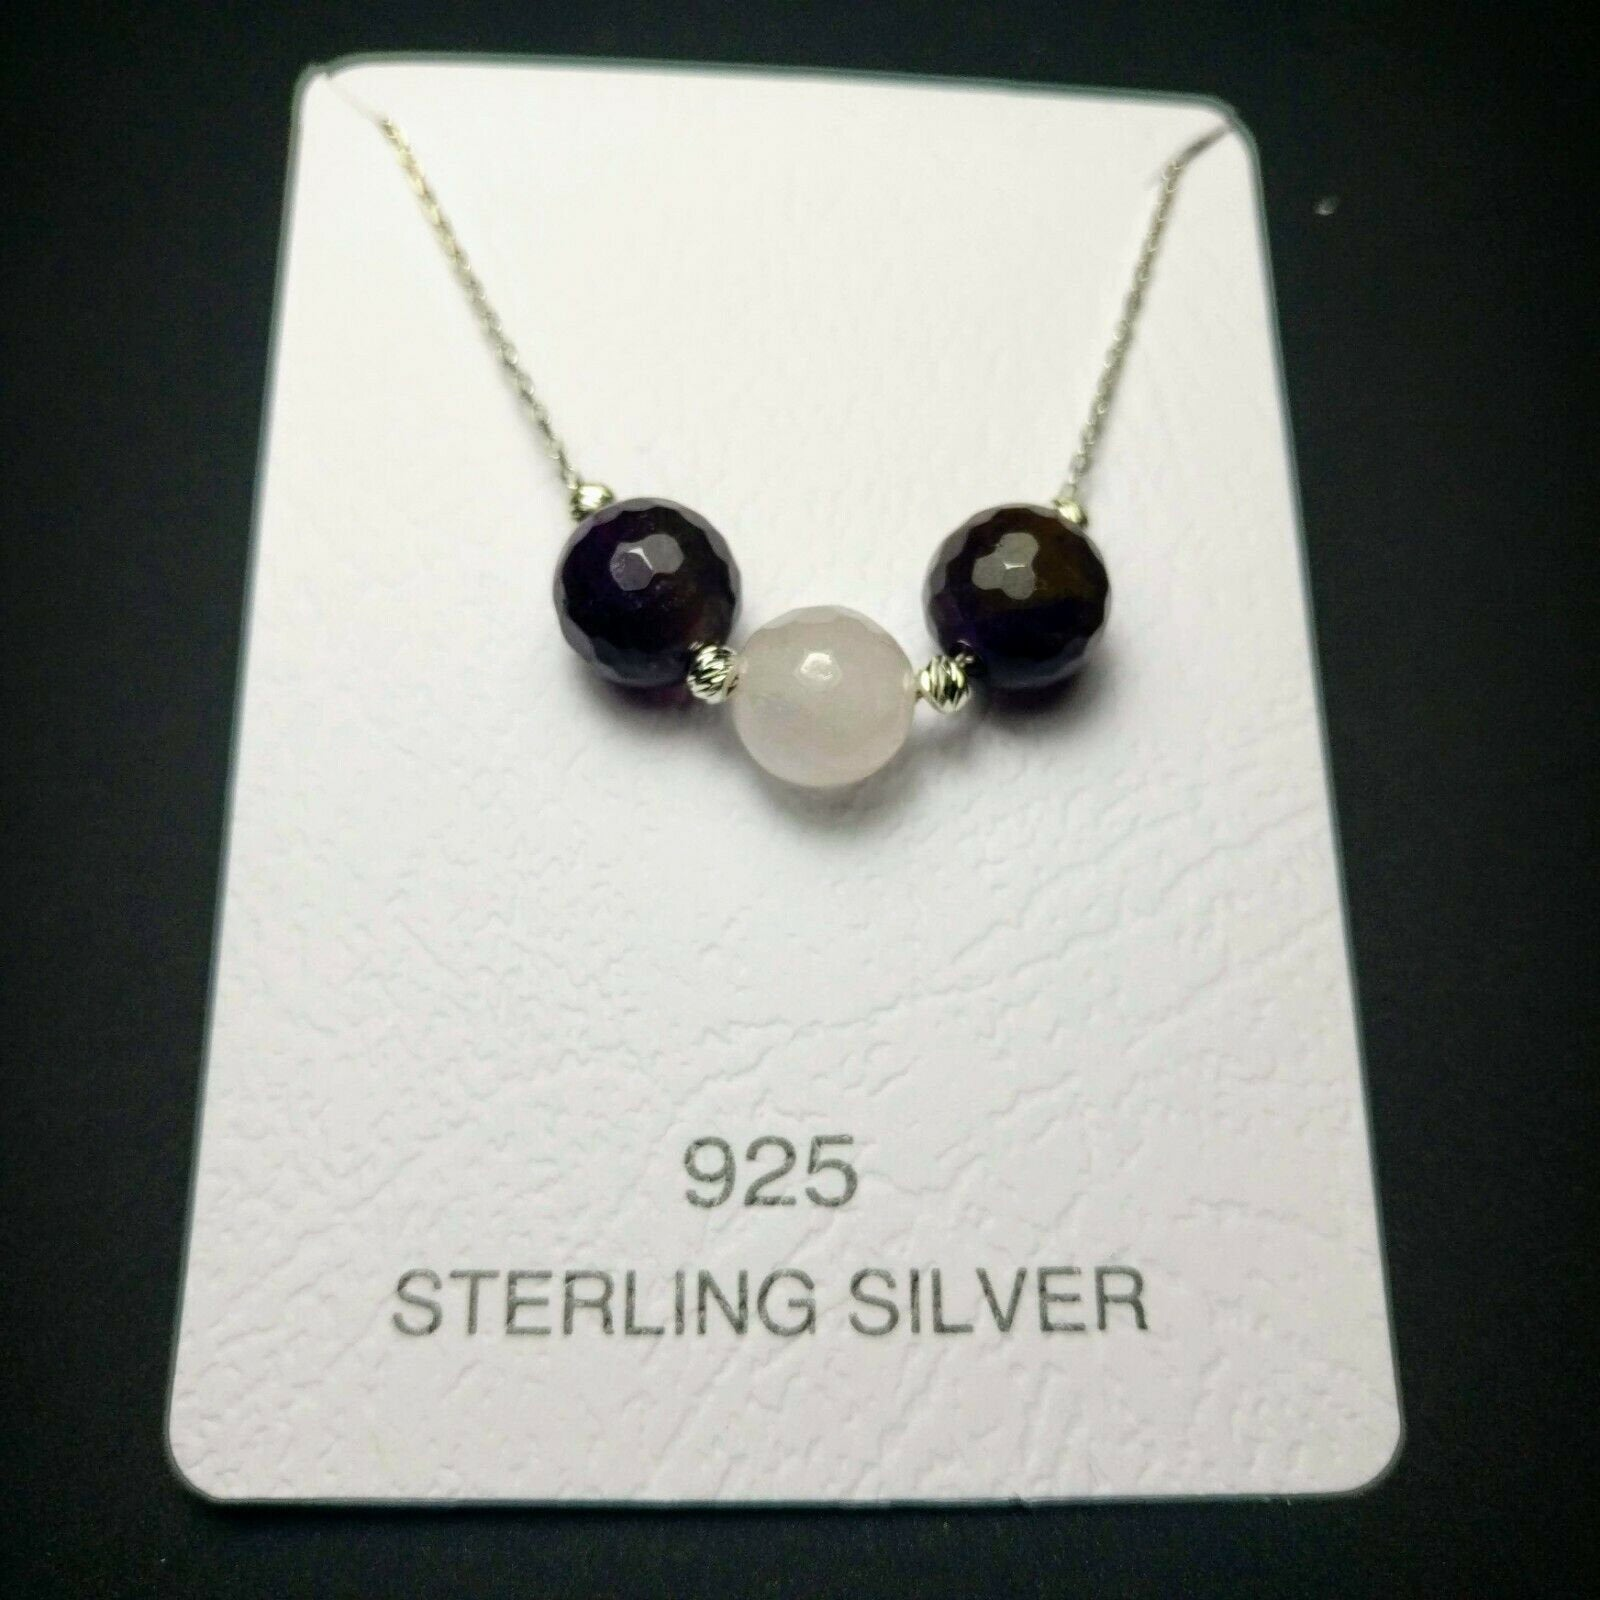 Empowering Amethyst Rose Quartz Gemstone 925 Sterling Silver Necklace Christmas Gift, healing gemstones 005